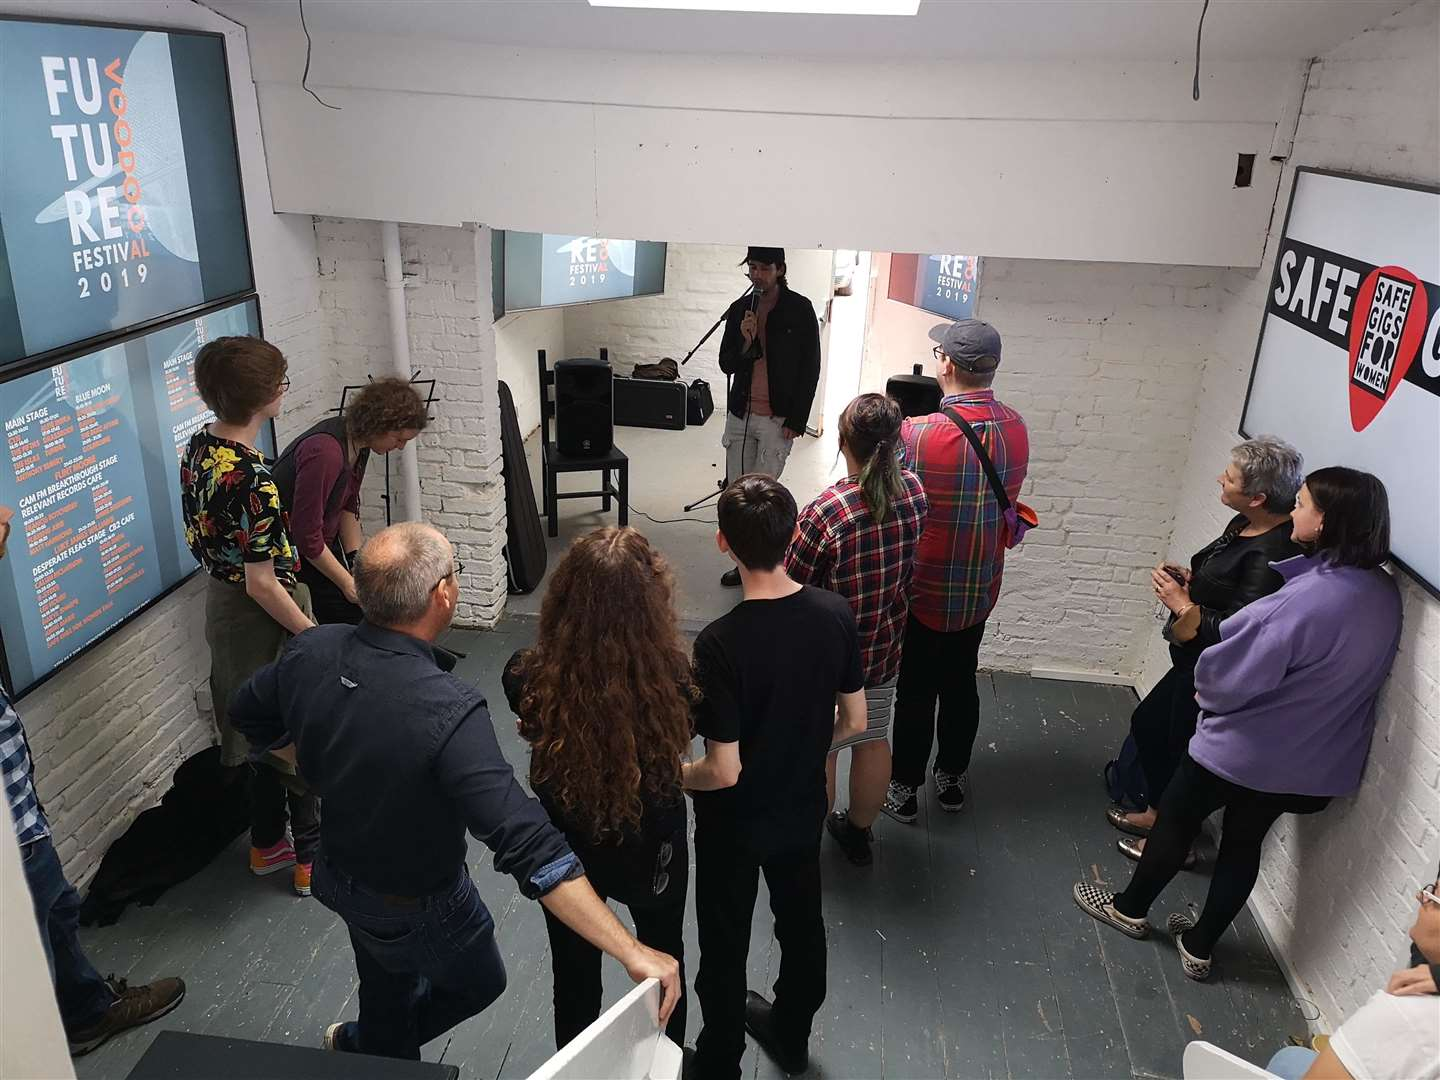 A recent Sook event at the Norfolk street site